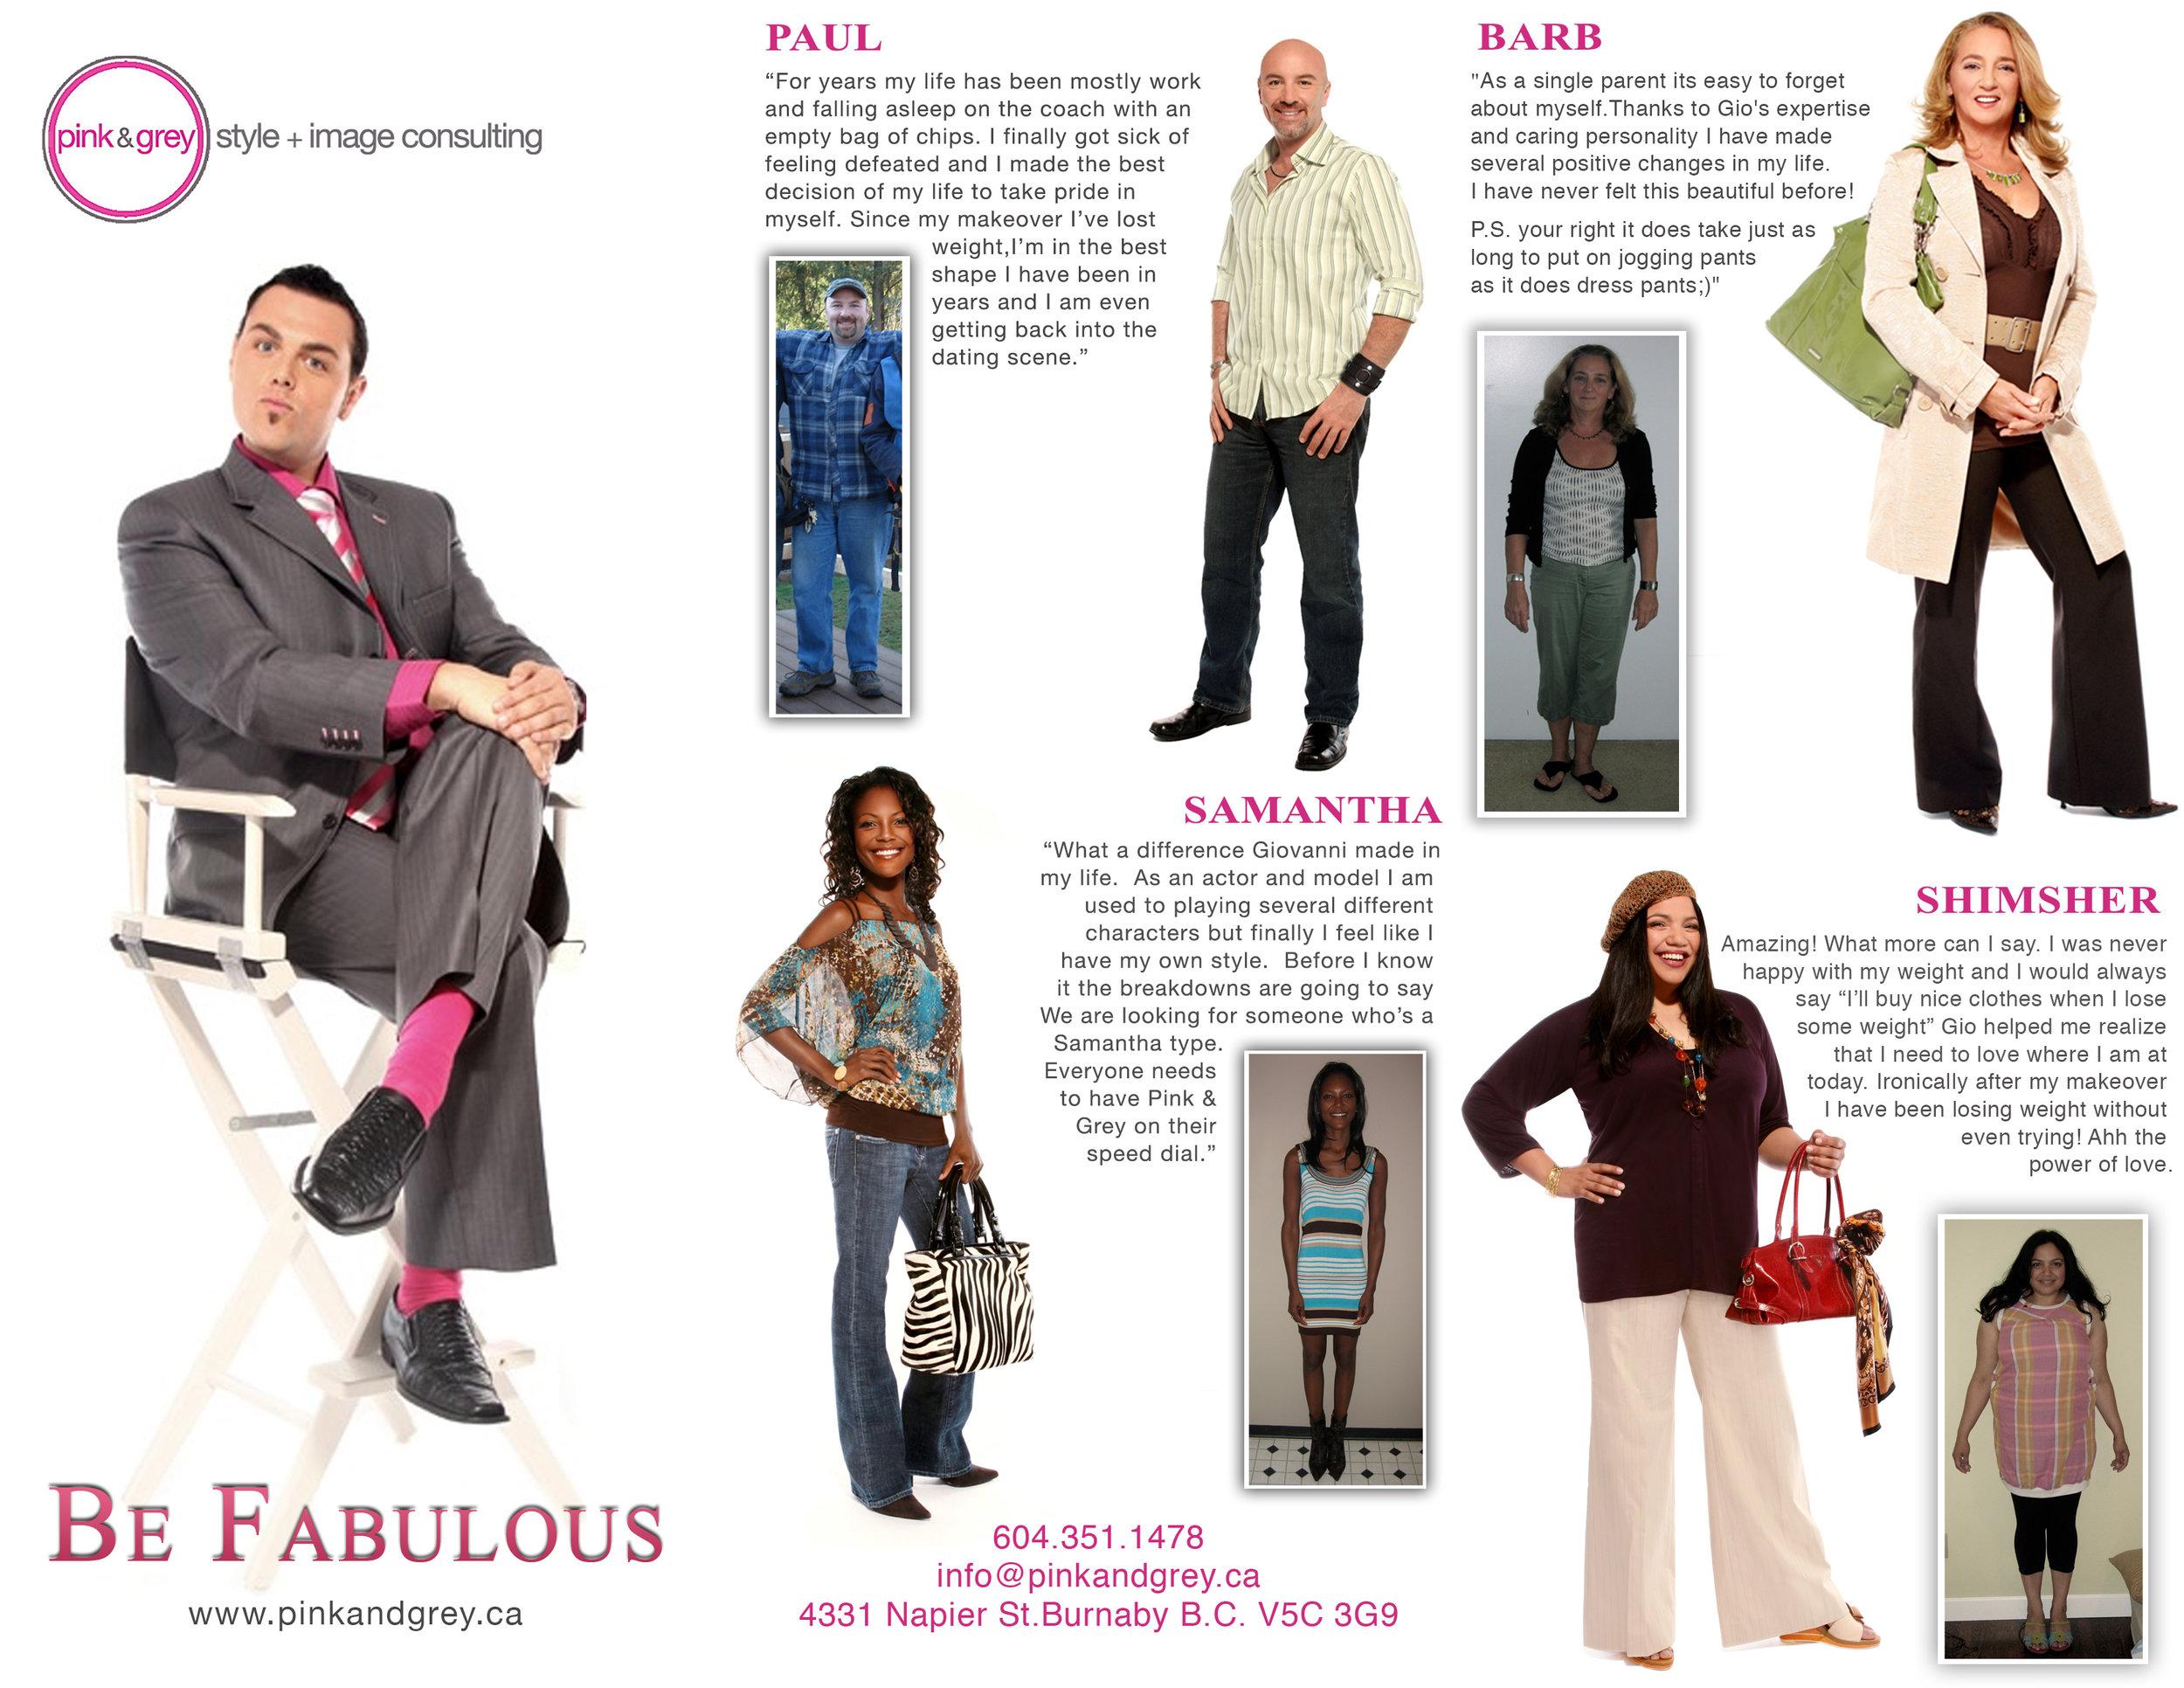 I was the CEO and creator of Pink & Grey Style & Image Consulting for over 10 years.